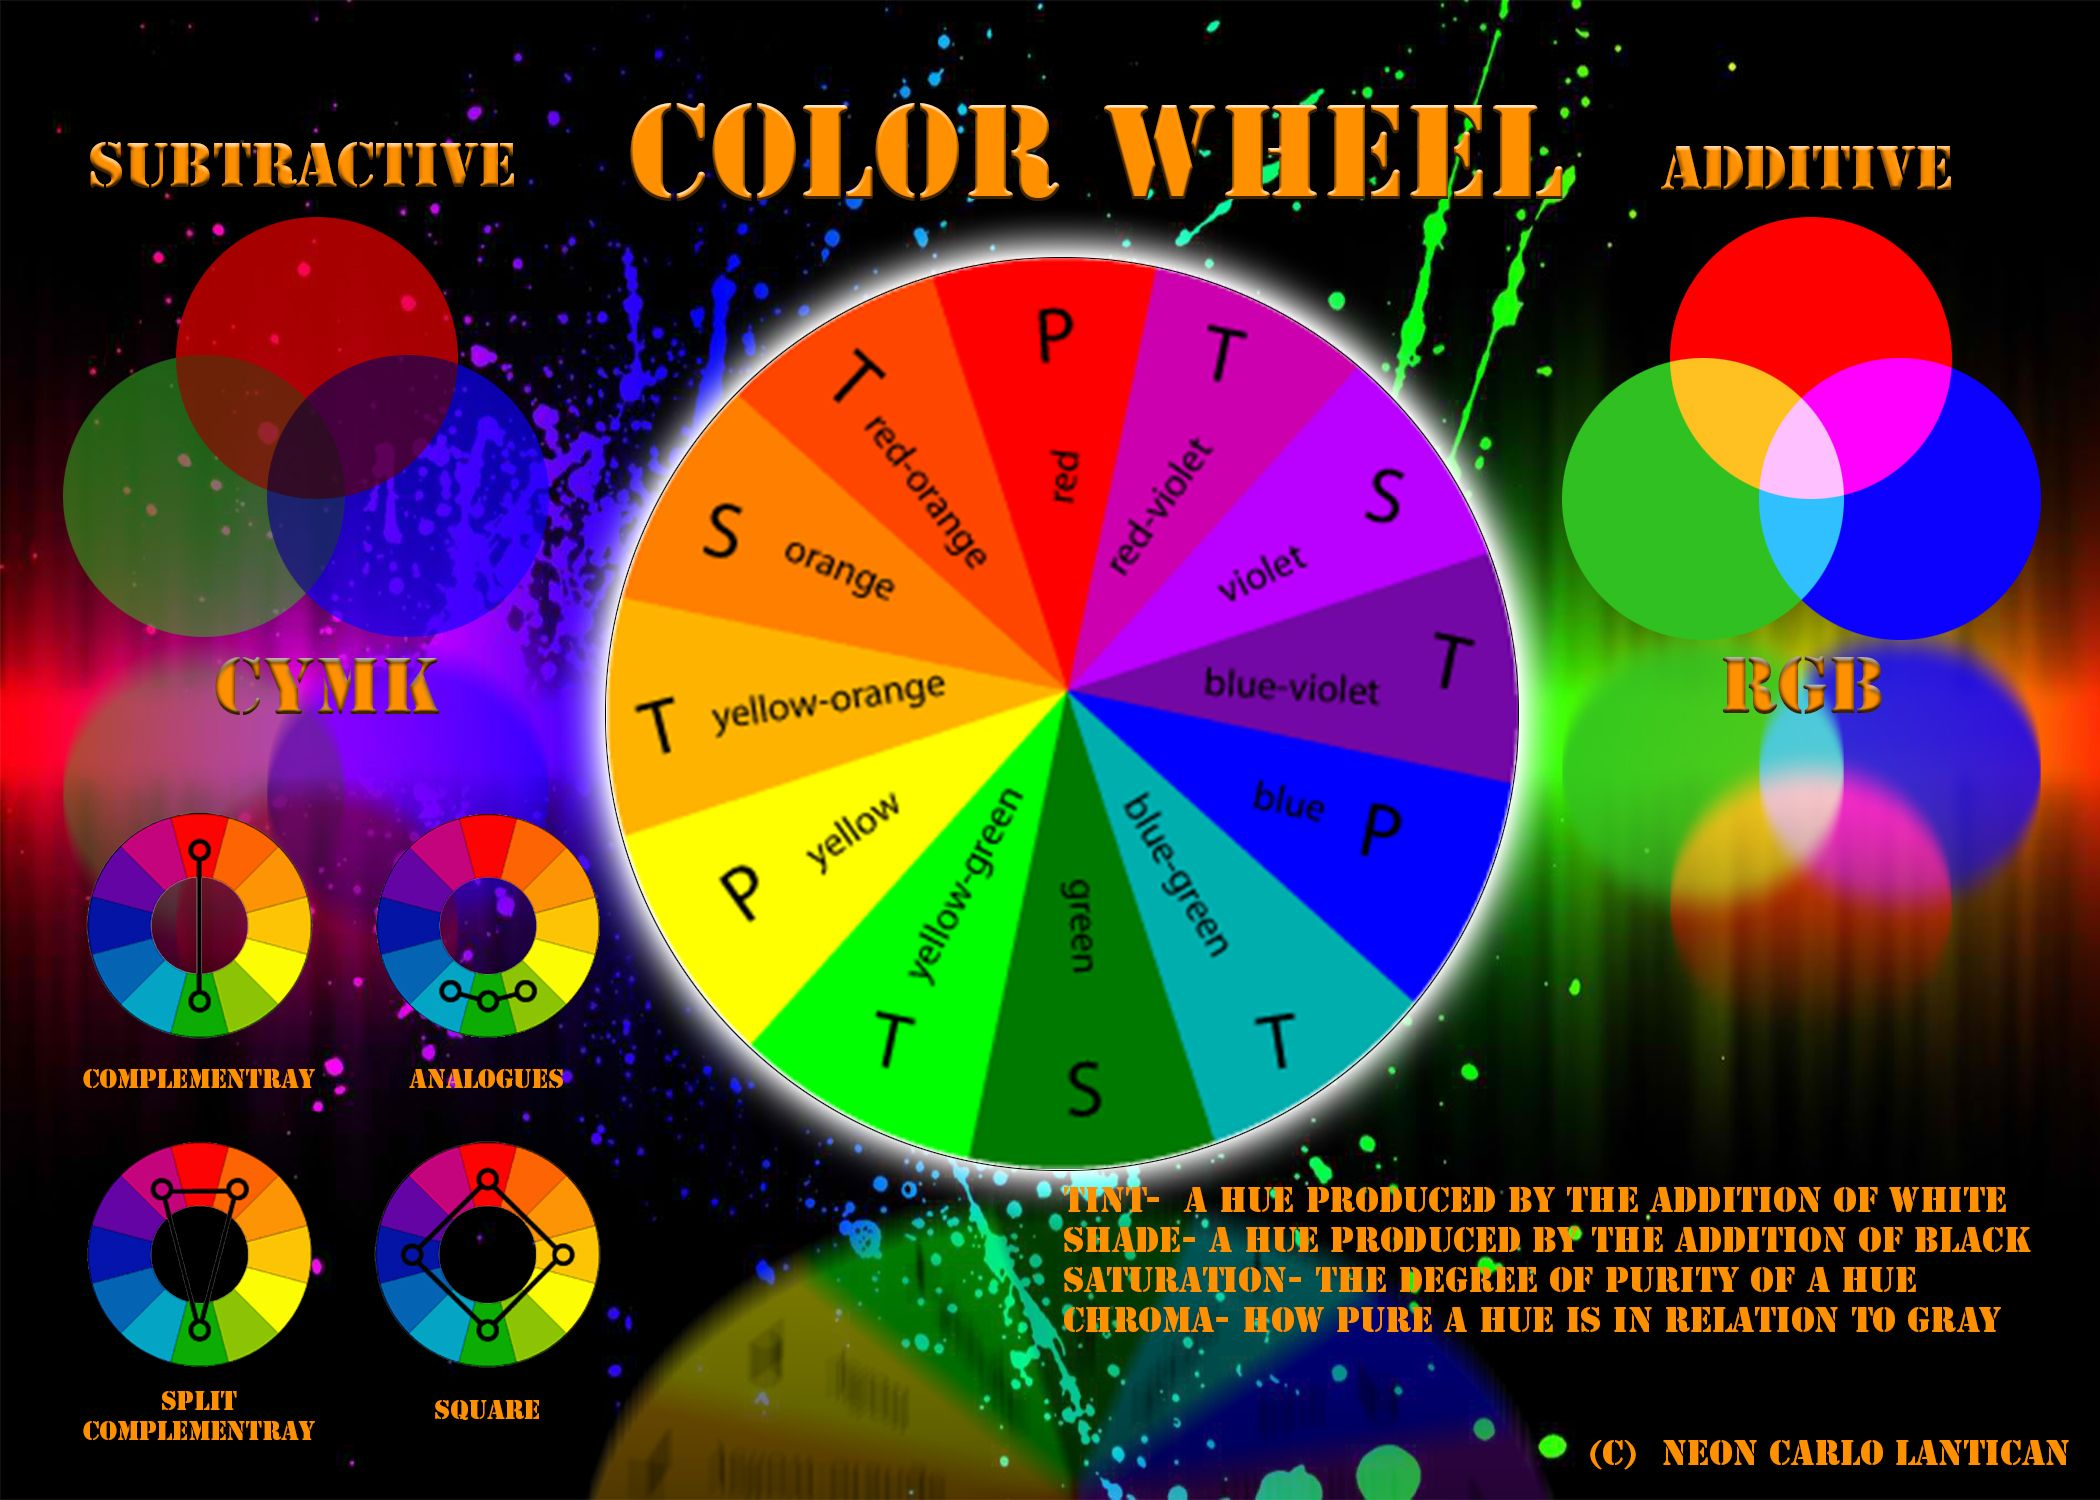 Color wheel complementary colors - Color Wheel Orange Park Fl Color Wheel Interior Design Color Wheel Complementary Colors As Well Home Design Ideas S Fathers